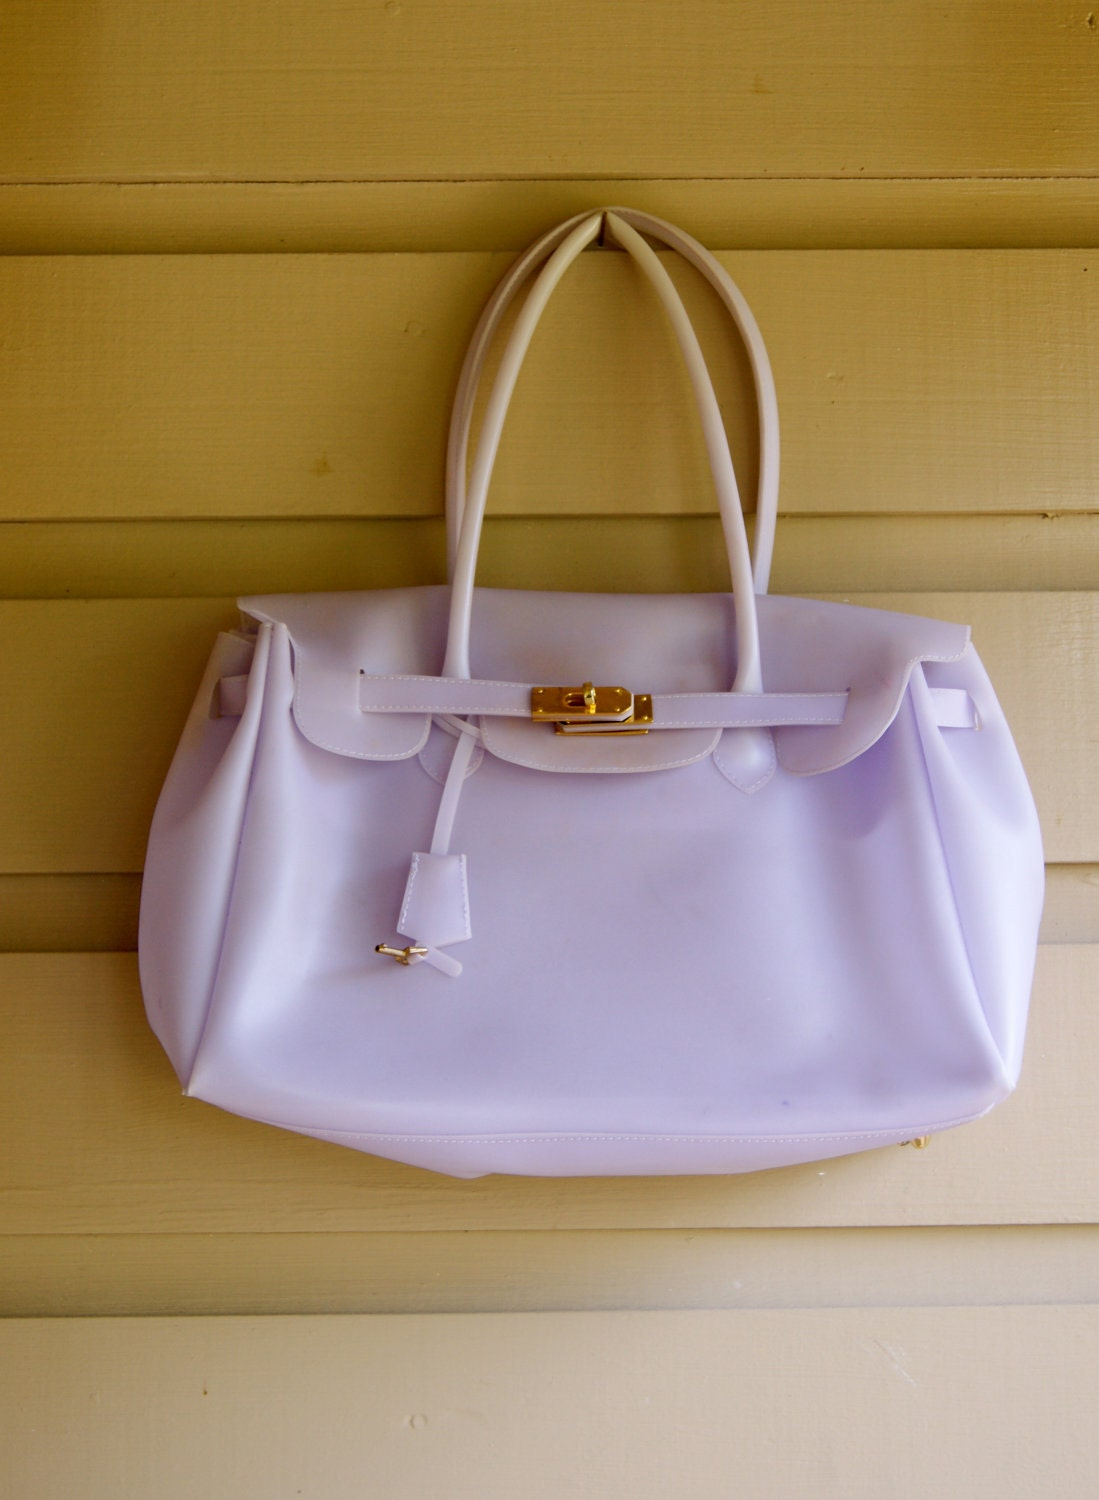 pink hermes birkin bag - JELLY KELLY Bag Lavender Summer Tote by RevivalVintageATX on Etsy